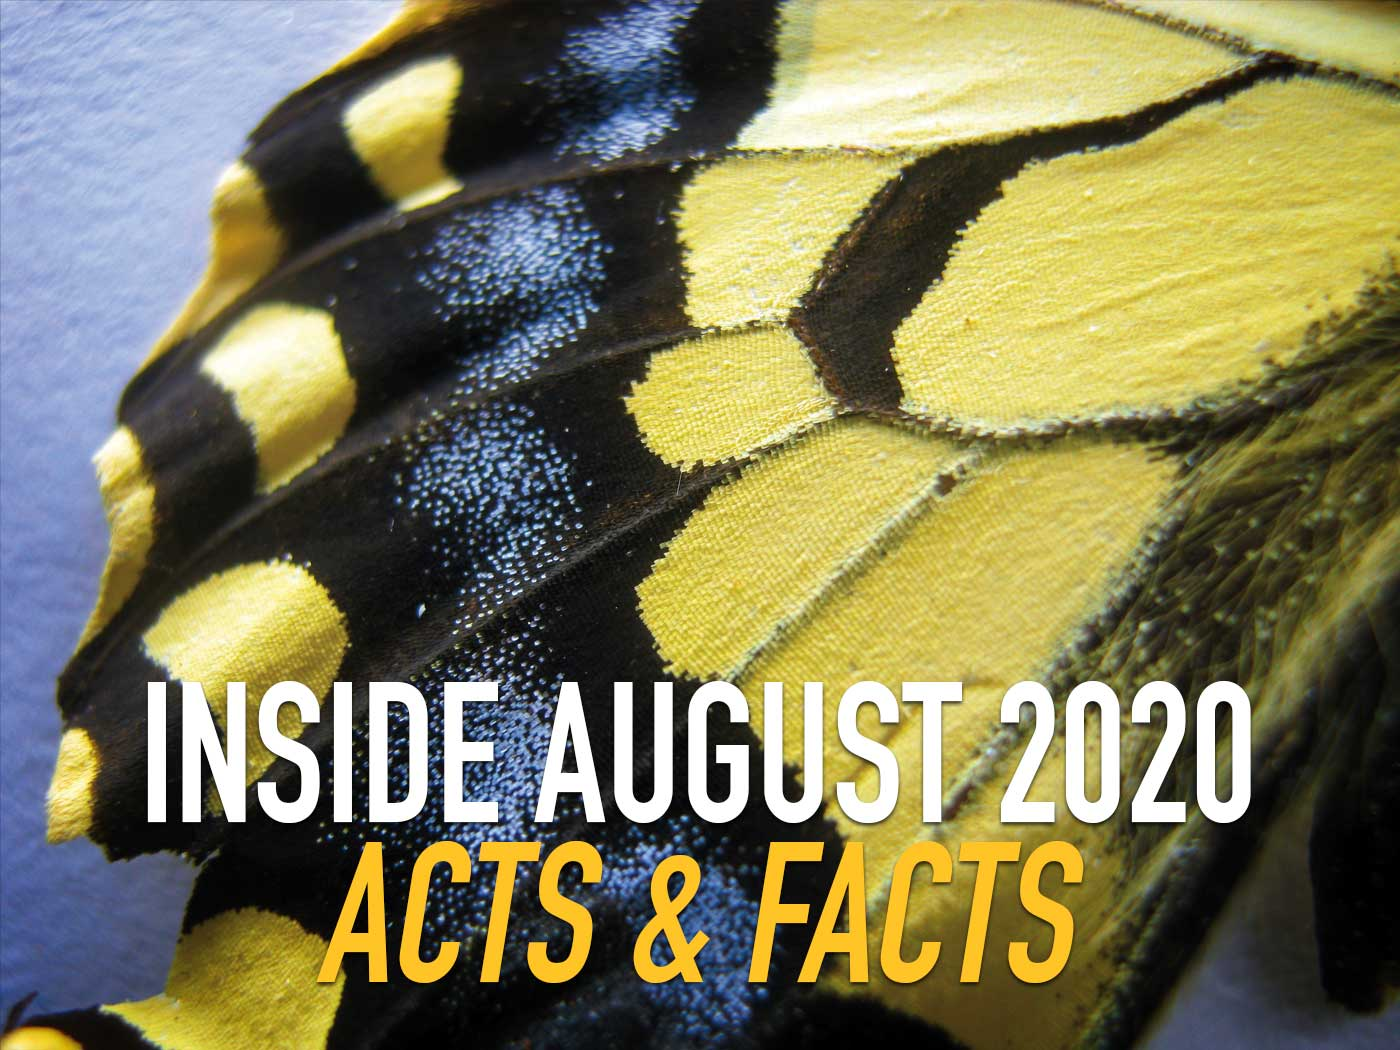 Inside August 2020 Acts & Facts